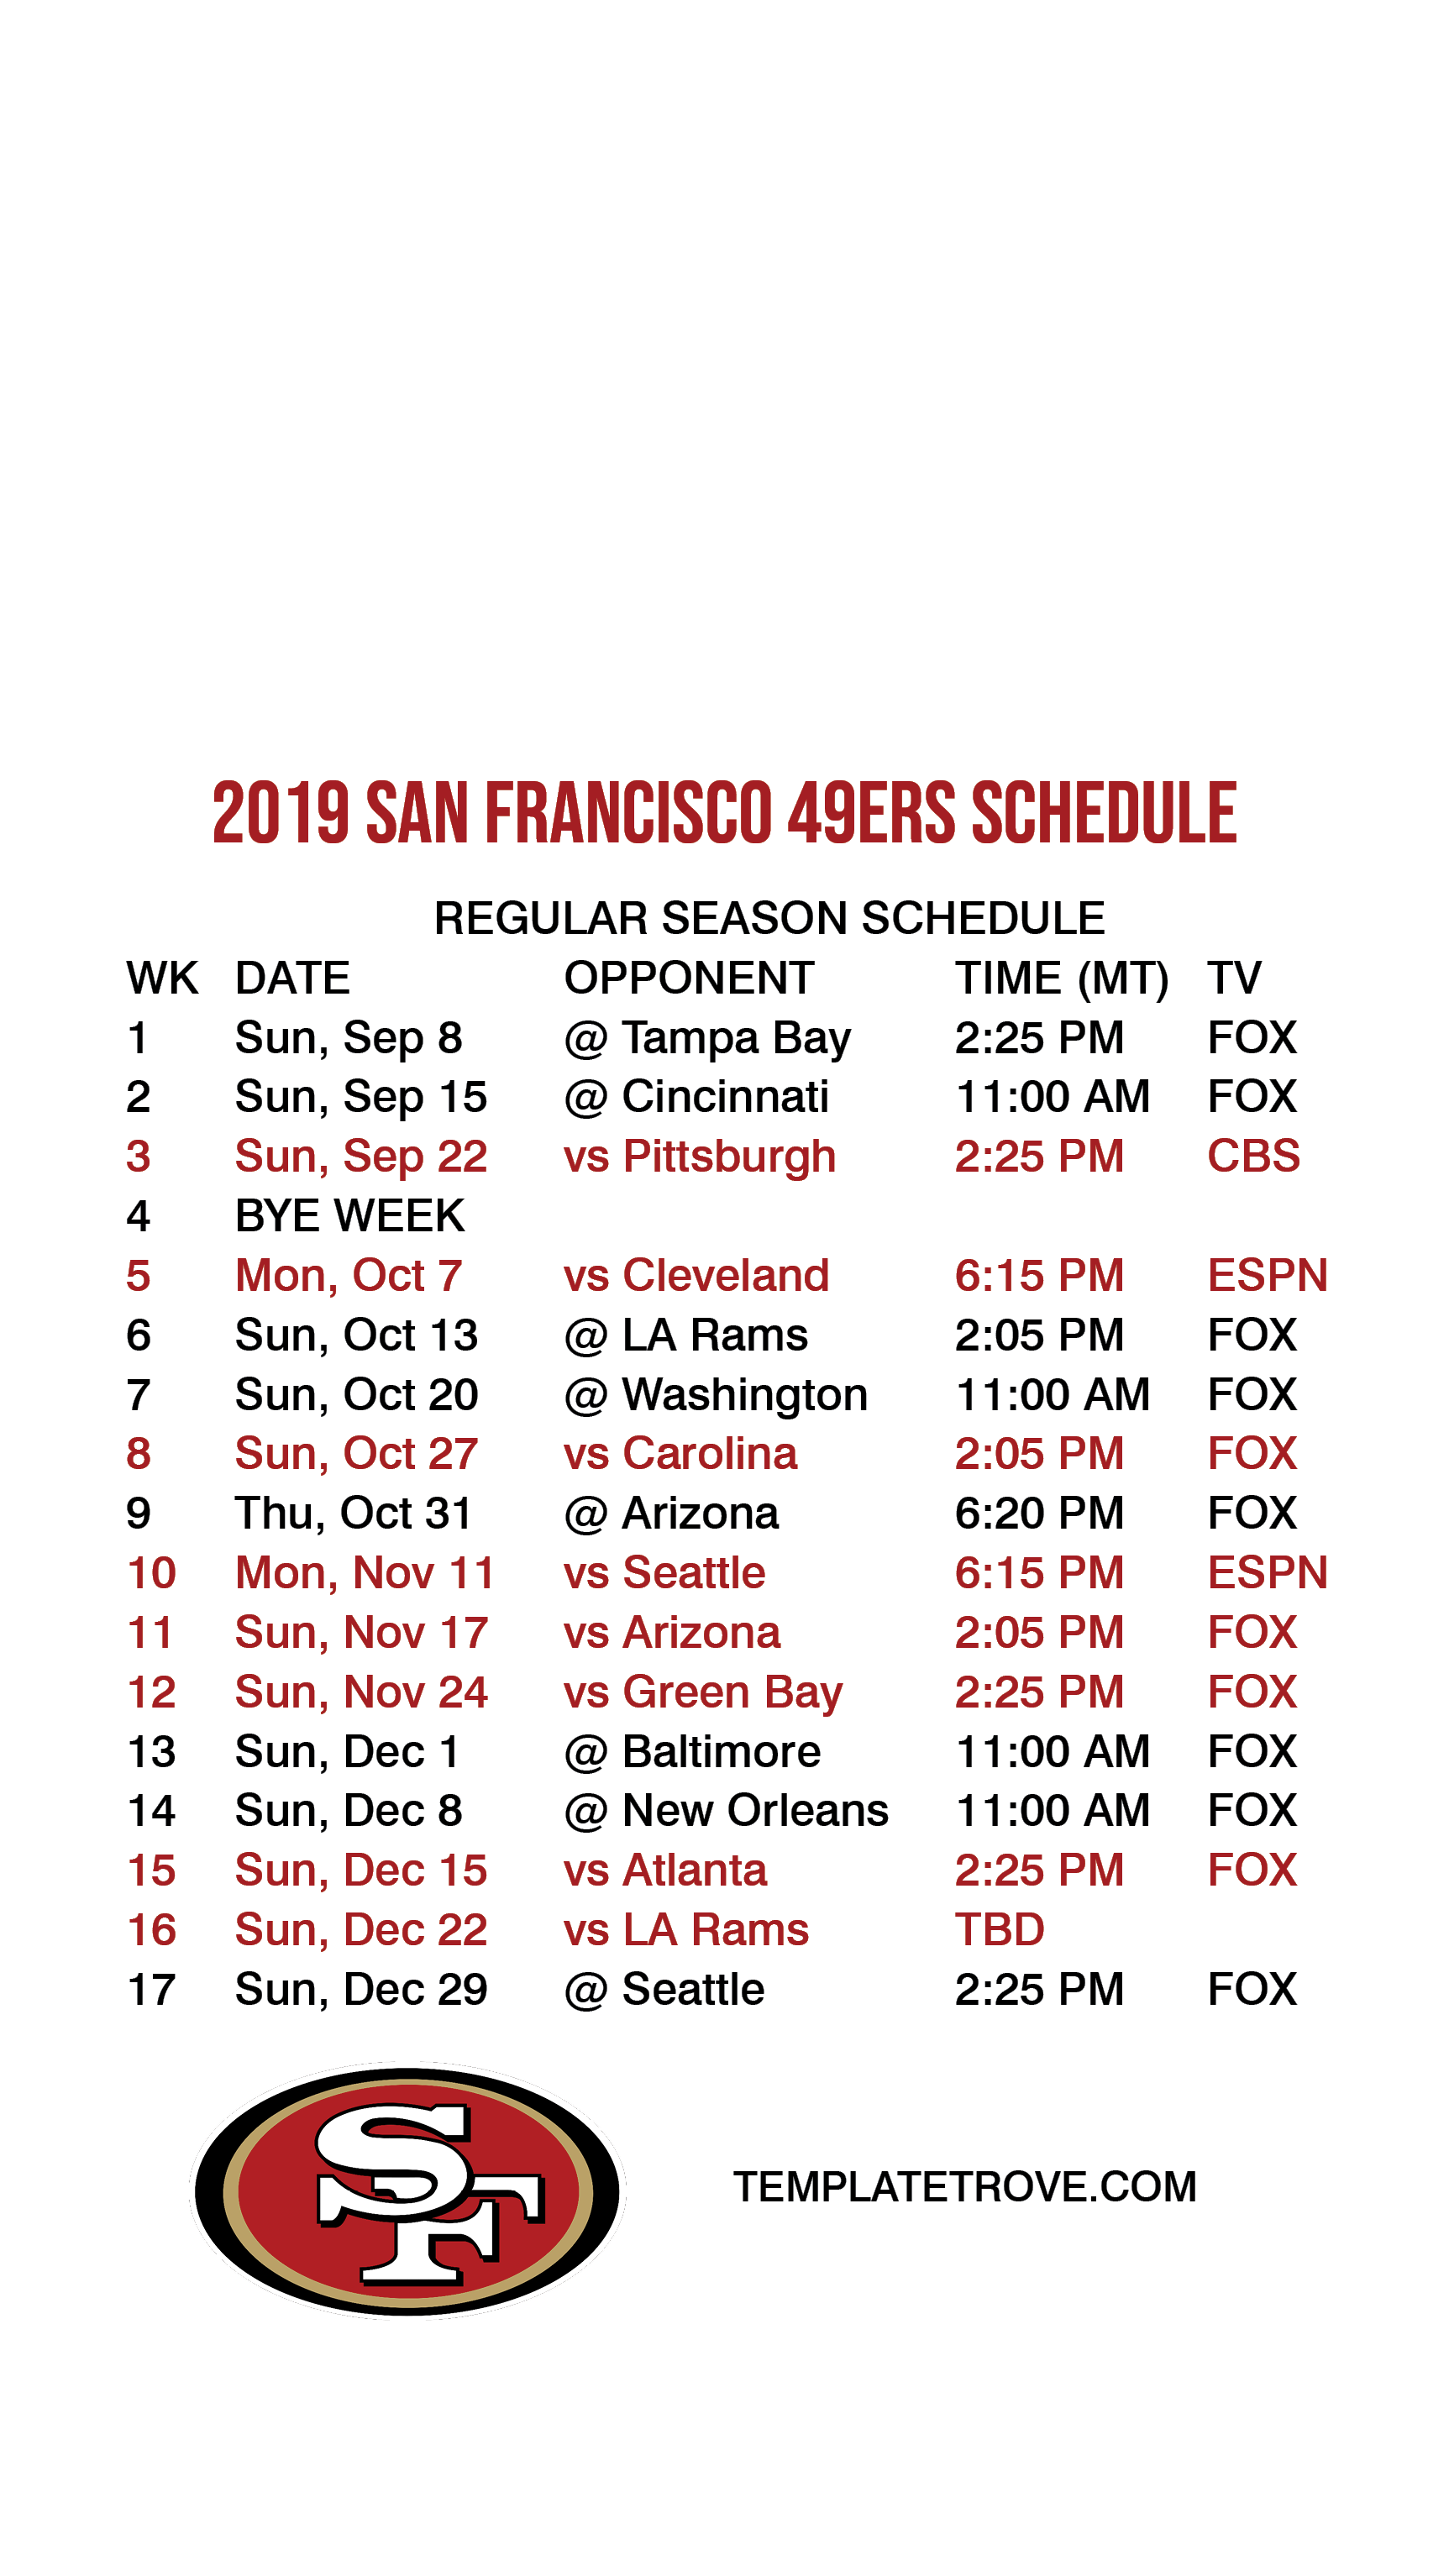 photograph regarding 49ers Schedule Printable identify 2019-2020 San Francisco 49ers Lock Exhibit Timetable for